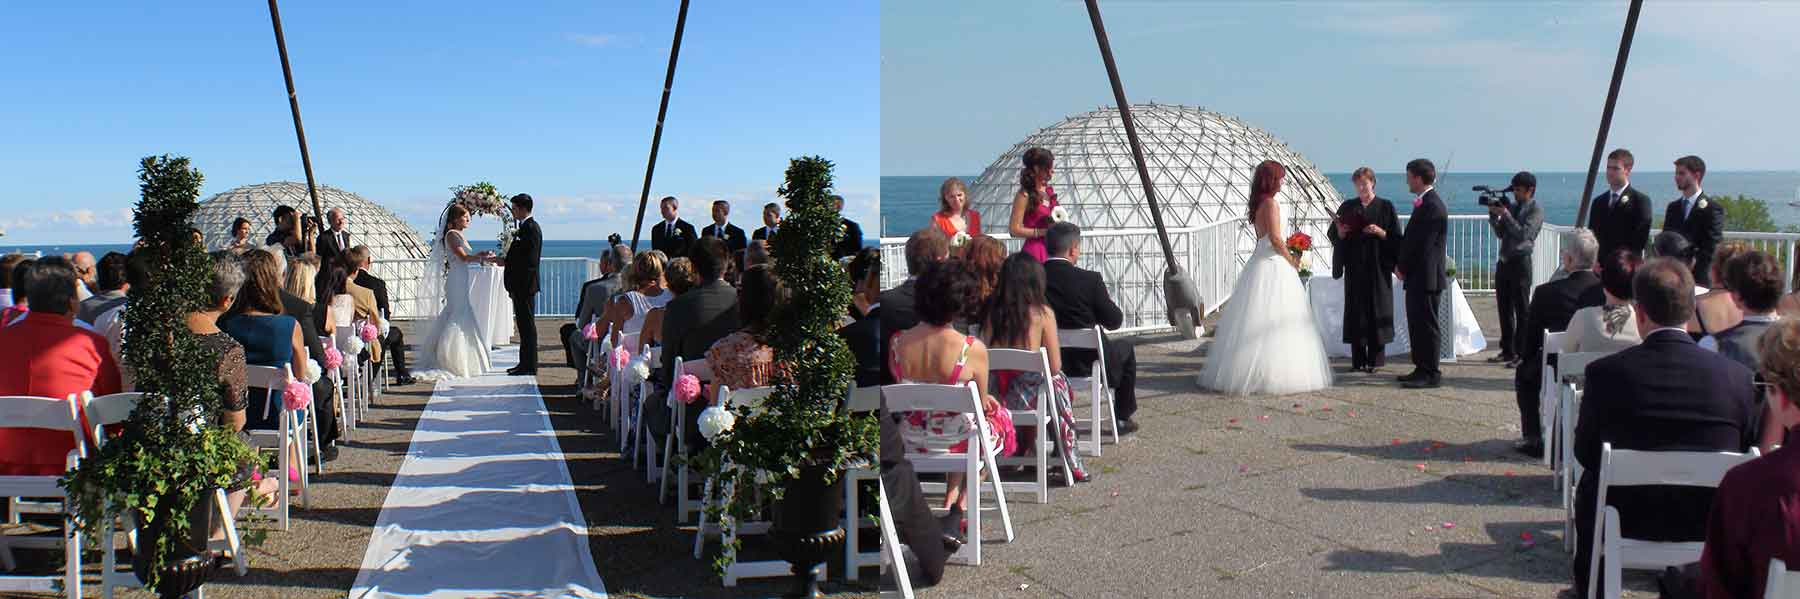 Rooftop Wedding Ceremony at Atlantis Pavilions